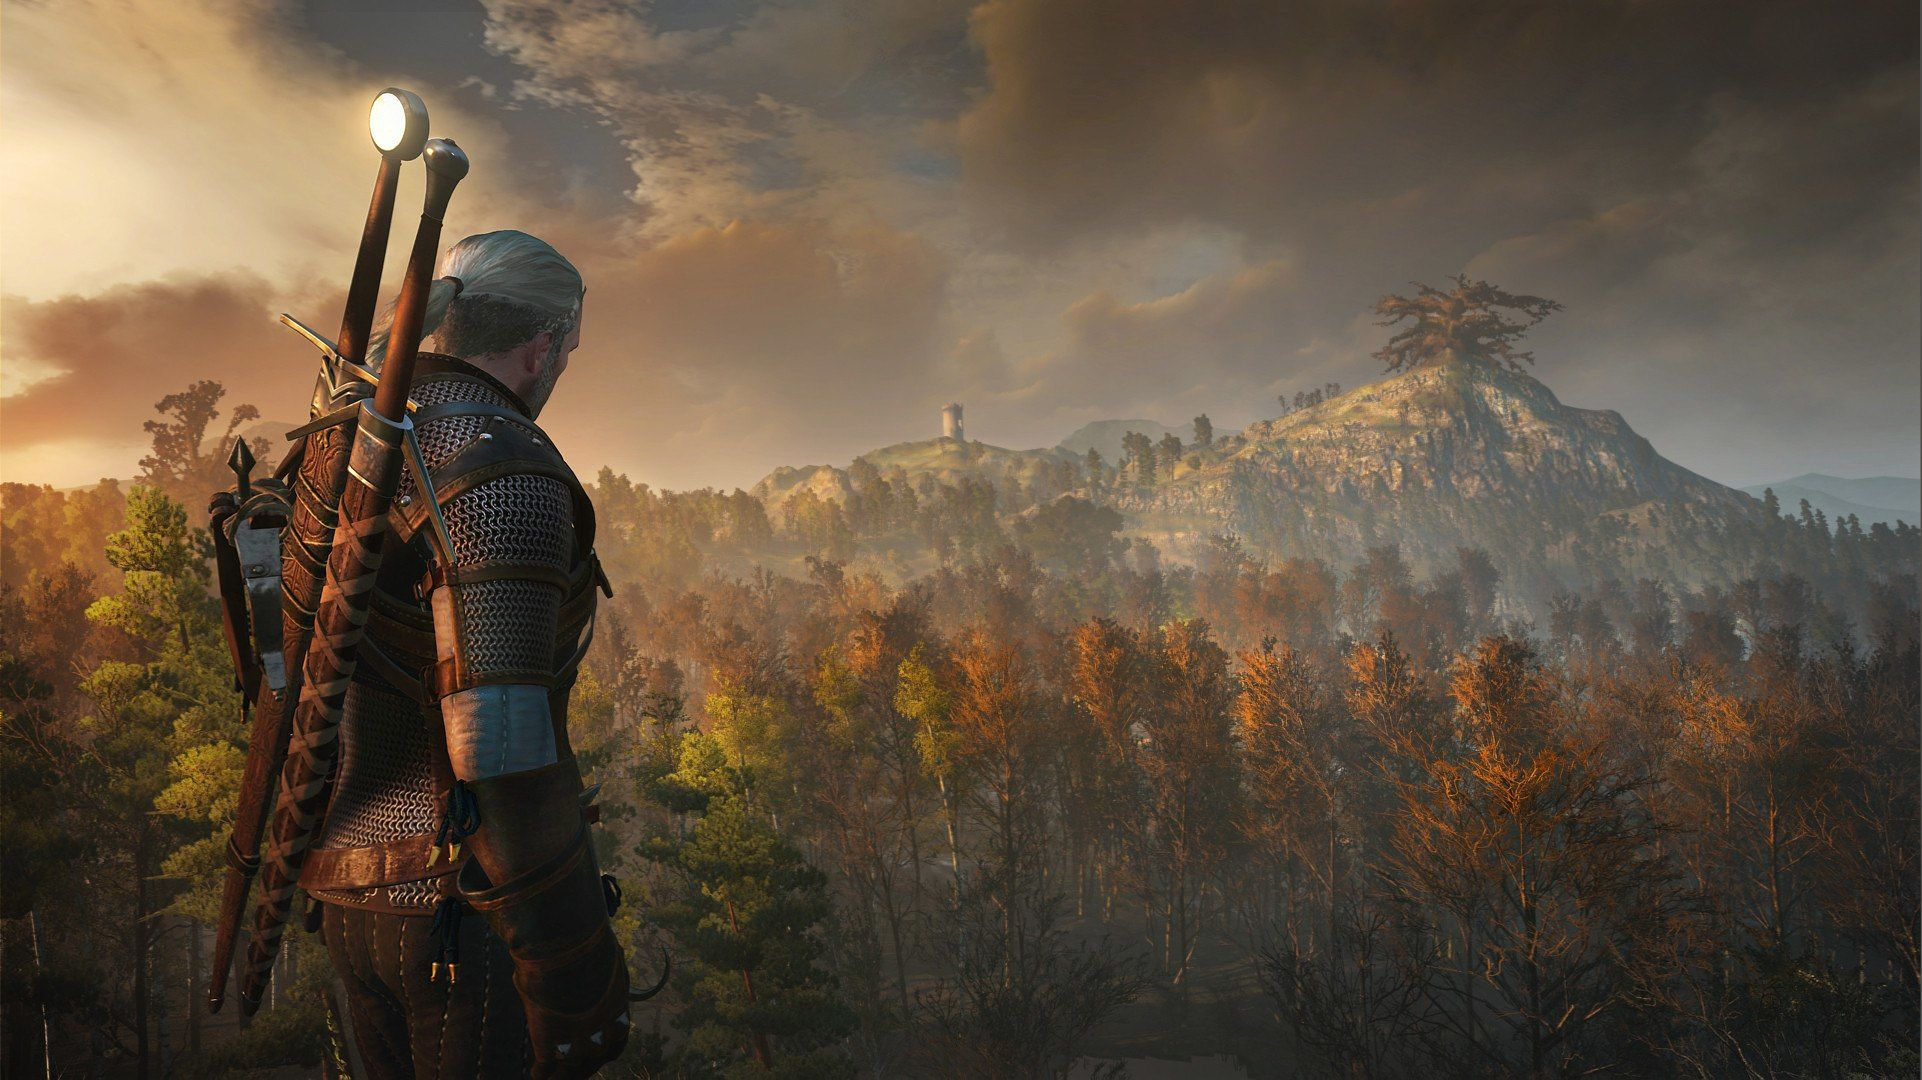 The Witcher Wallpaper HD 1922×1080 The Witcher 3 Wild Hunt